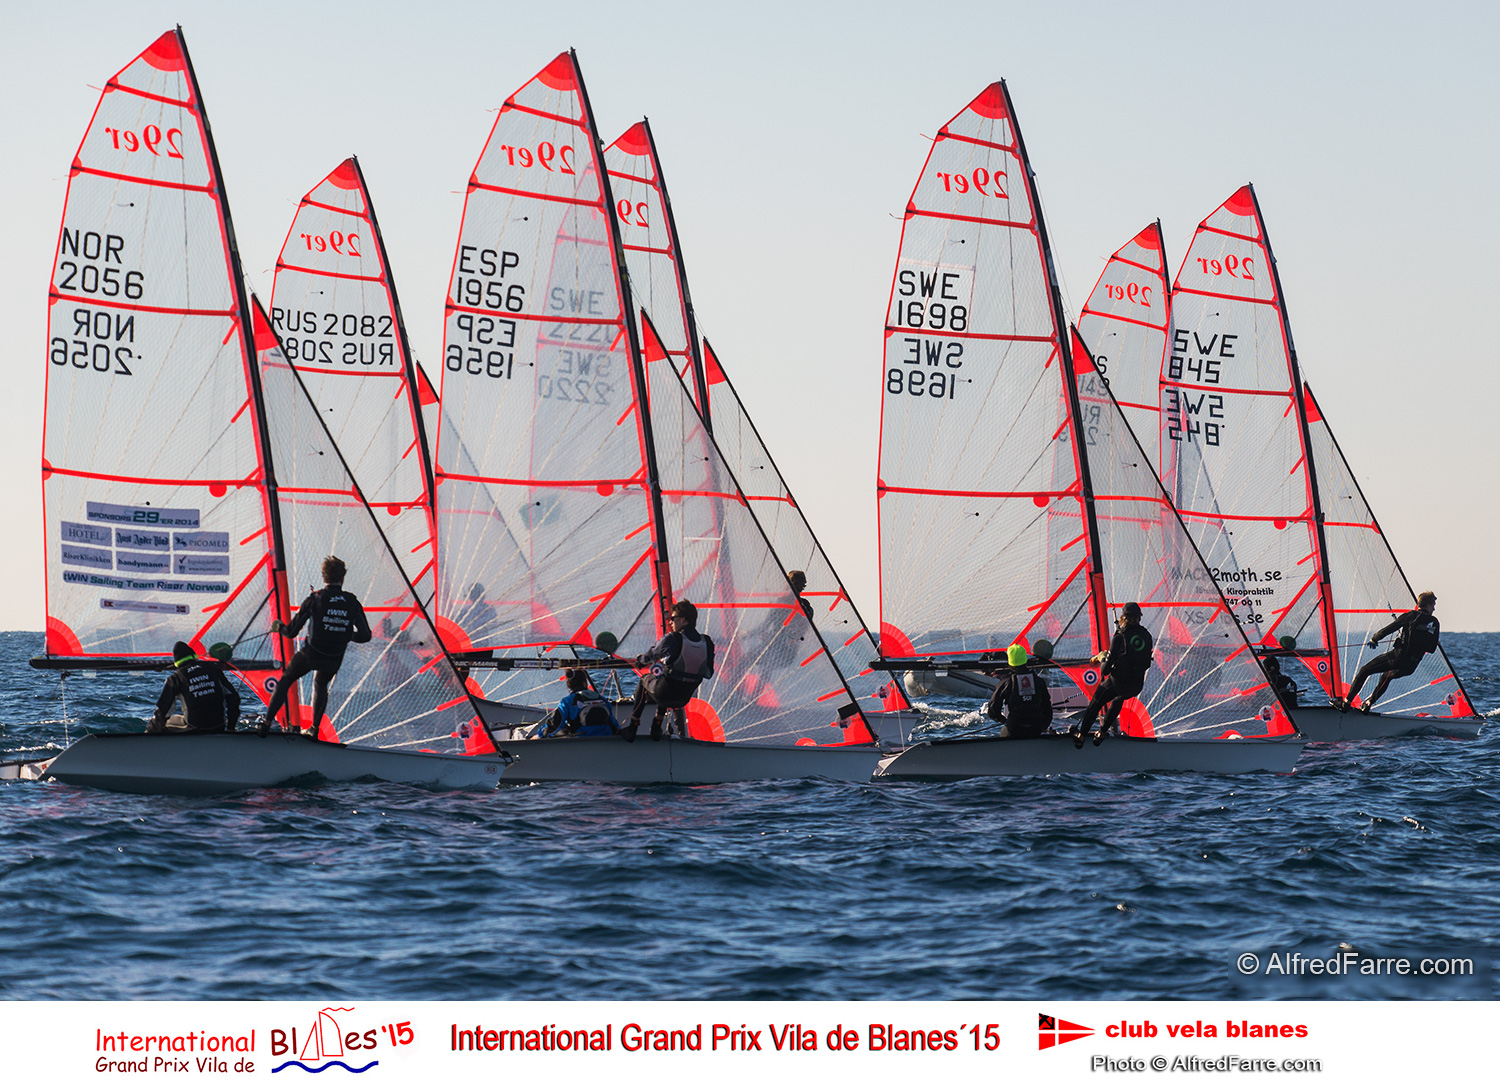 International Gran Prix Vila de Blanes 2015